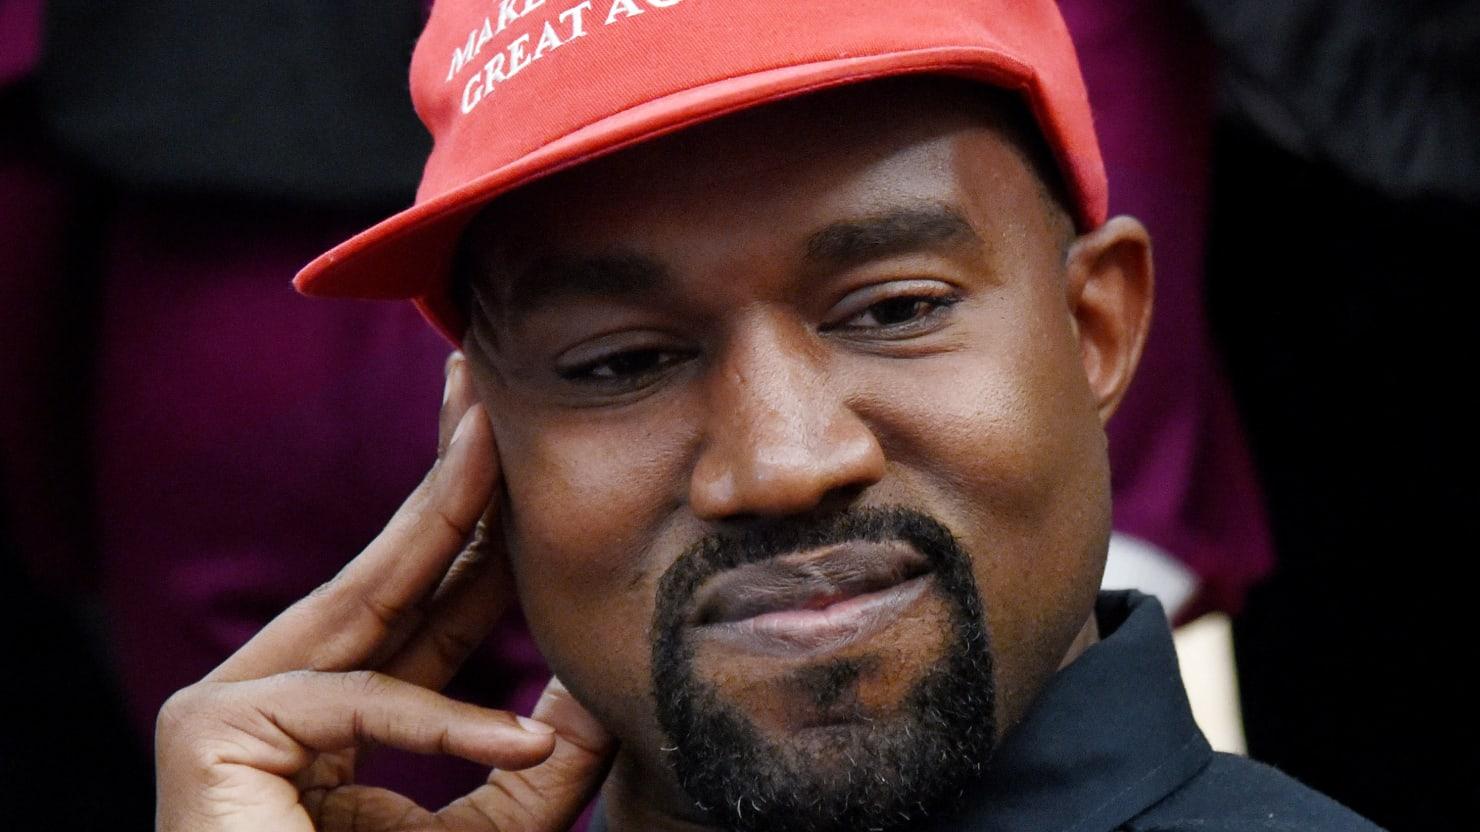 Billionaire Kanye West's Company Yeezy LLC Gets Multimillion-Dollar PPP Loan From Trump Admin